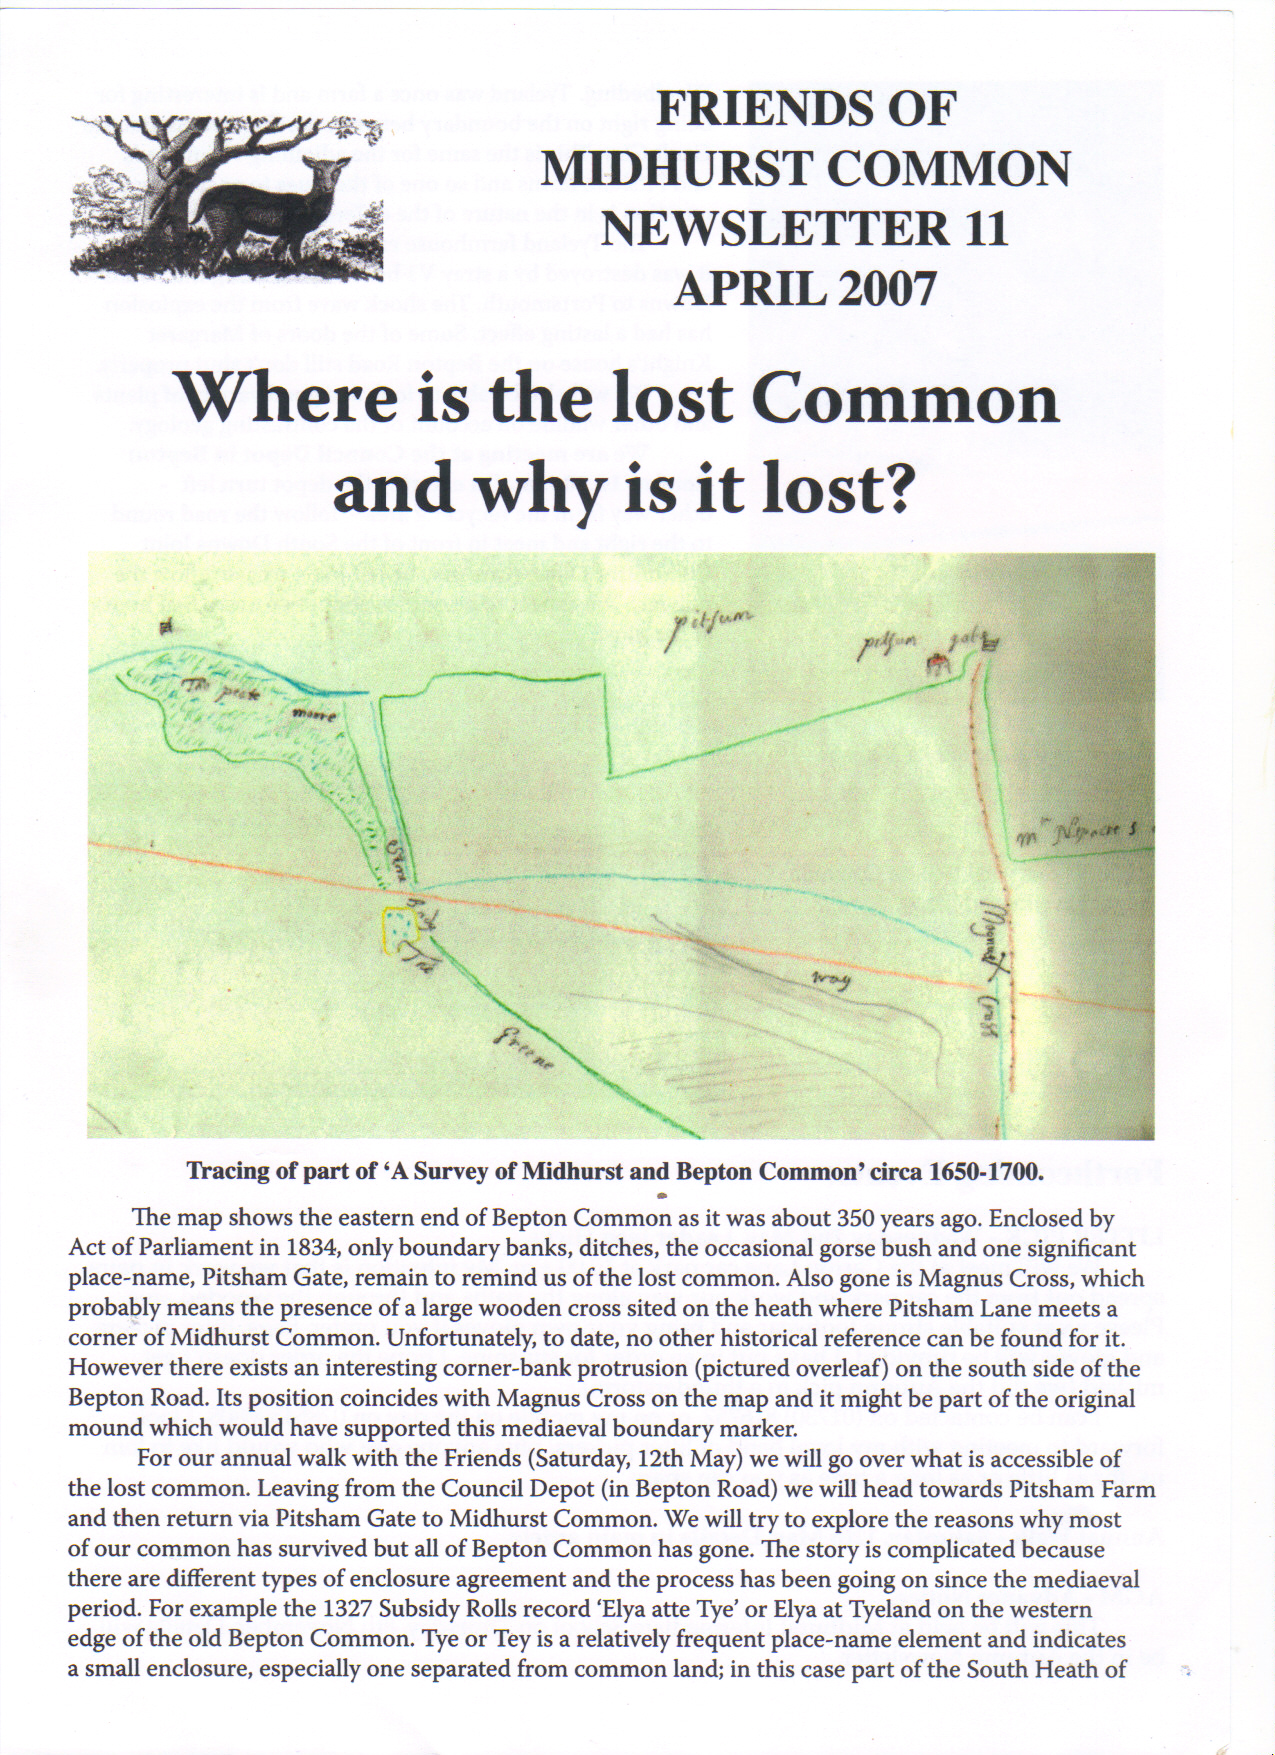 Where is the lost common and why is it lost?